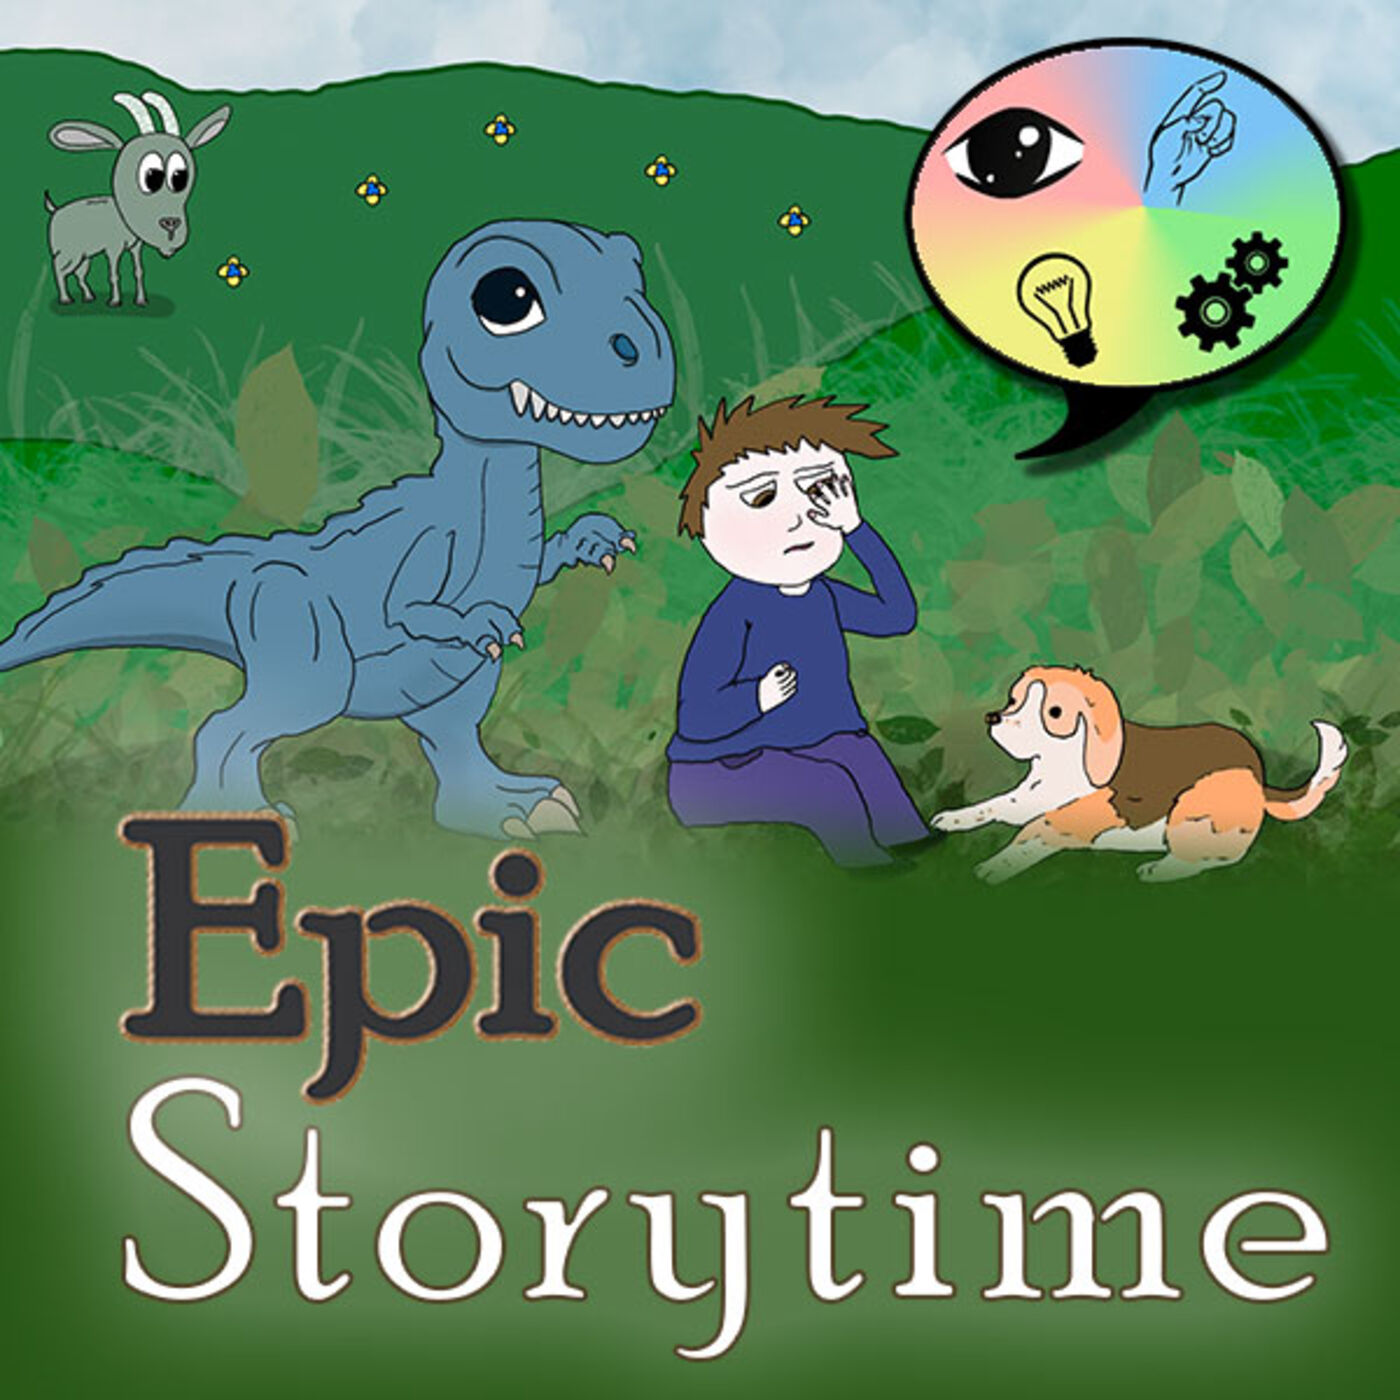 Epic Storytime: Olaf's Goat